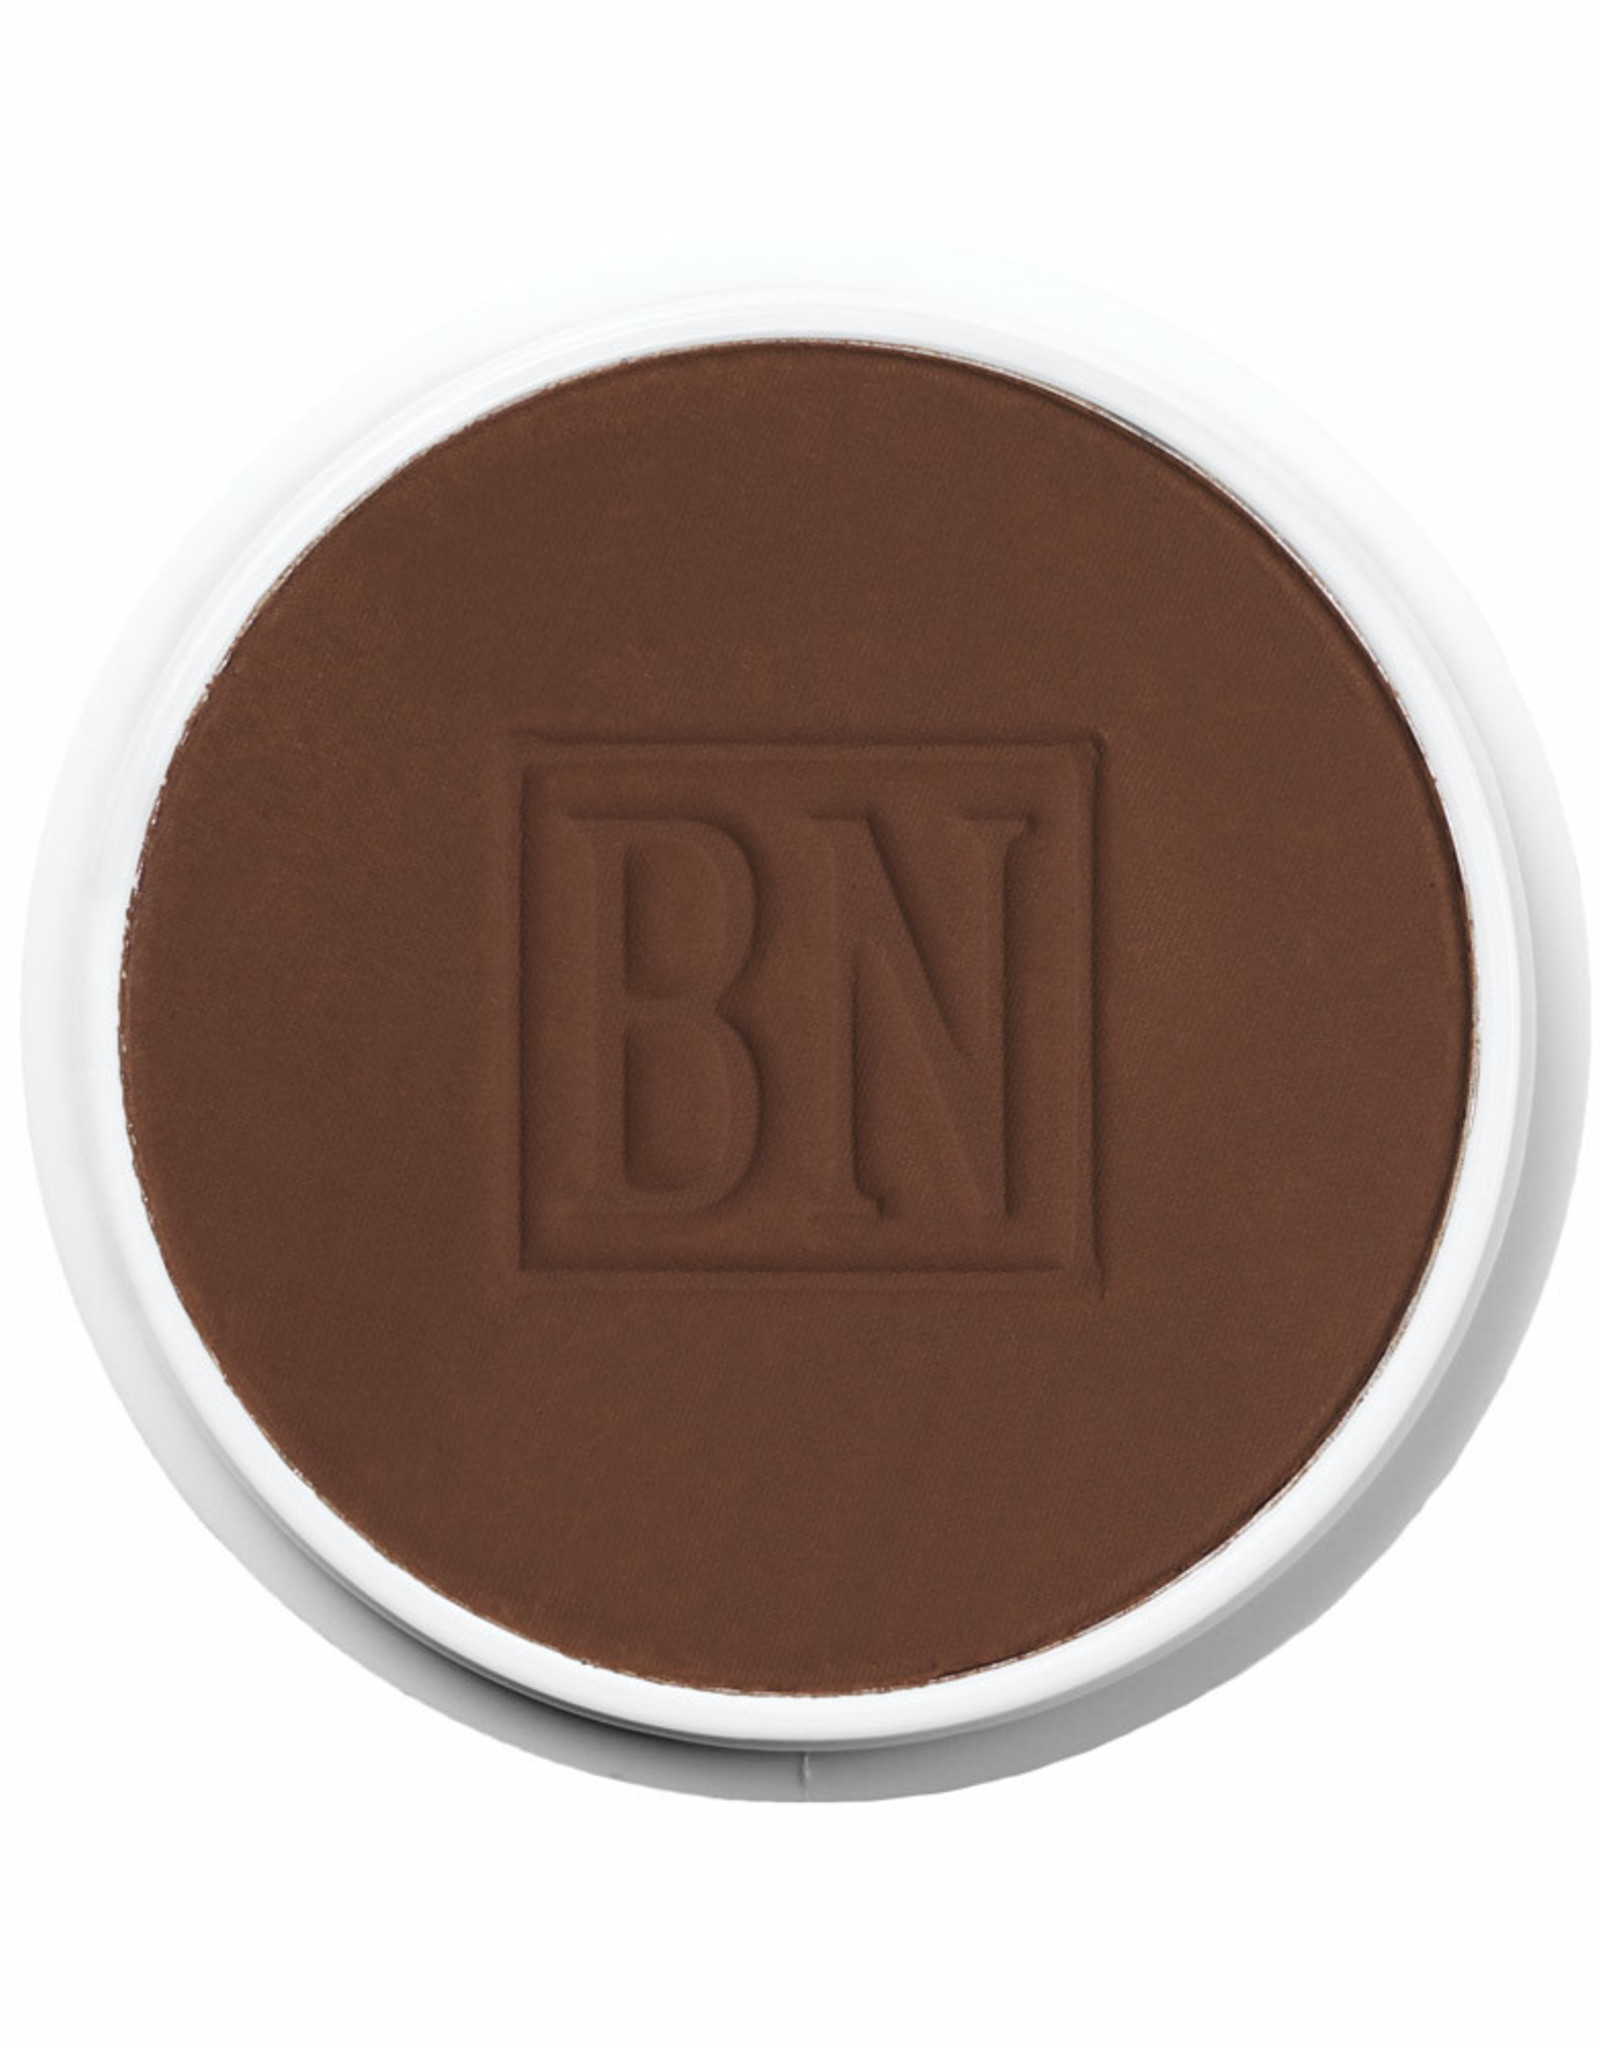 Ben Nye FOUNDATION-CAKE, GLDN EBONY, 1 OZ